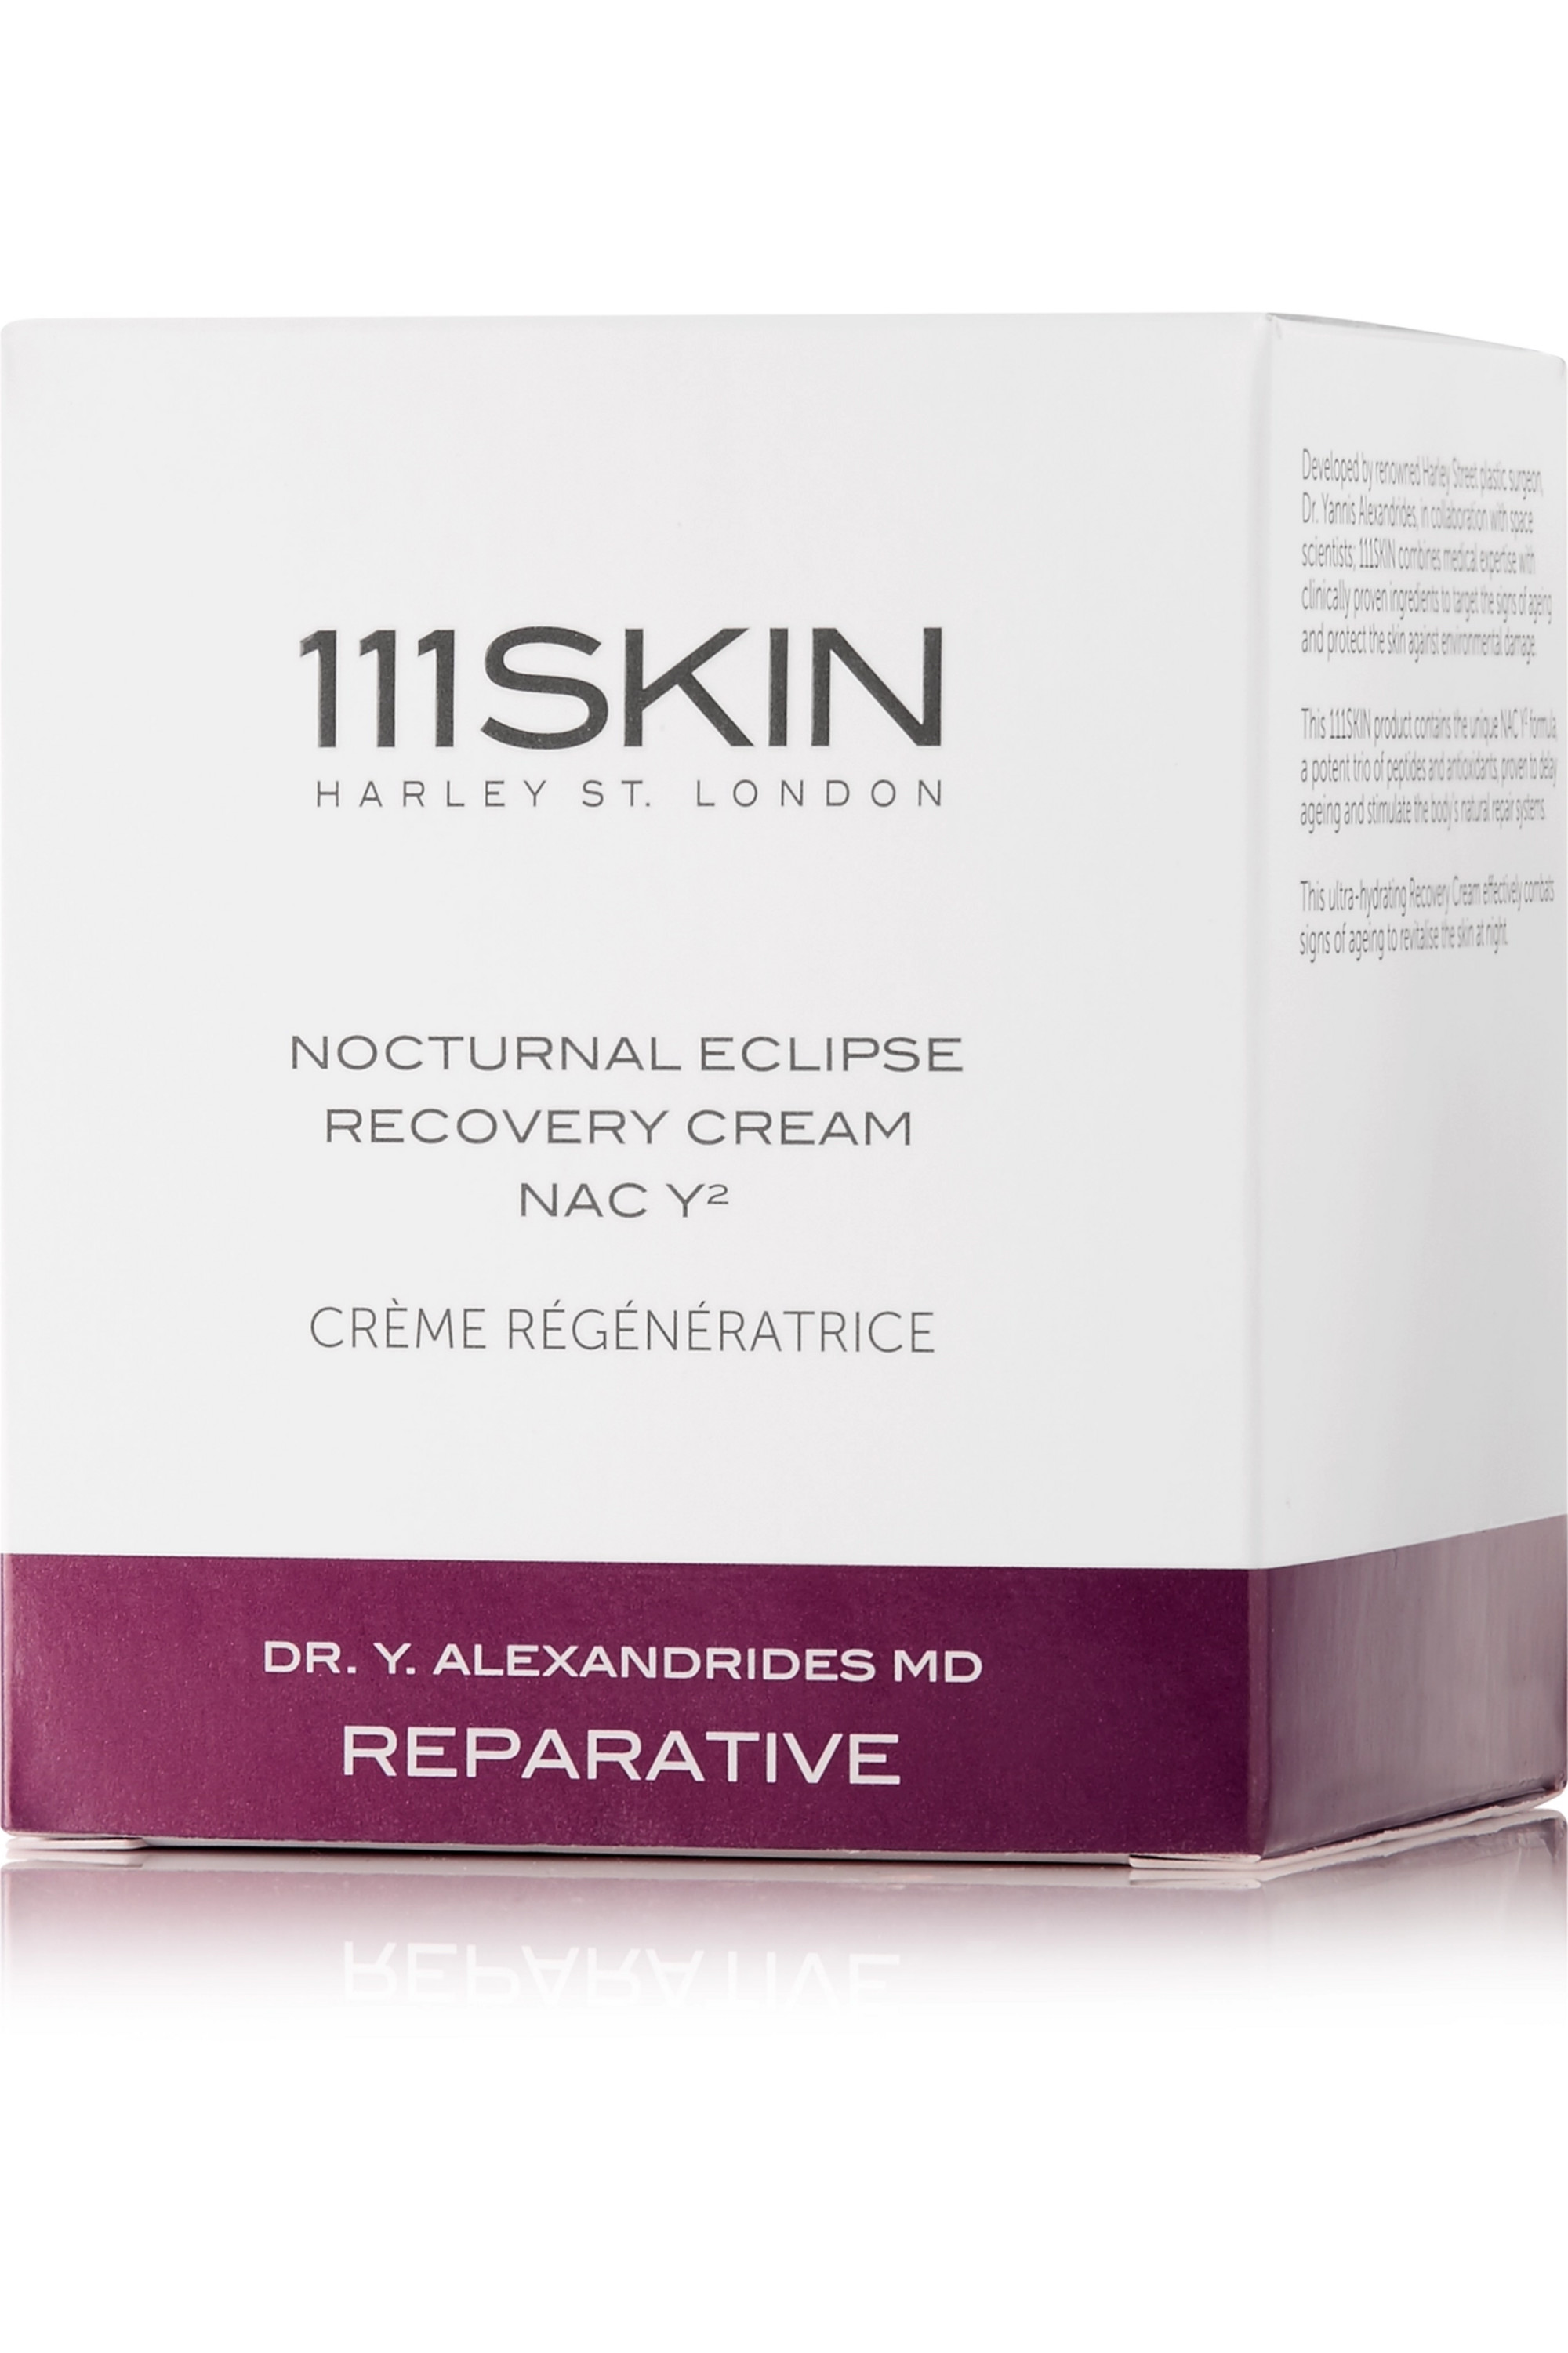 111SKIN Nocturnal Eclipse Recovery Cream NAC Y², 50ml